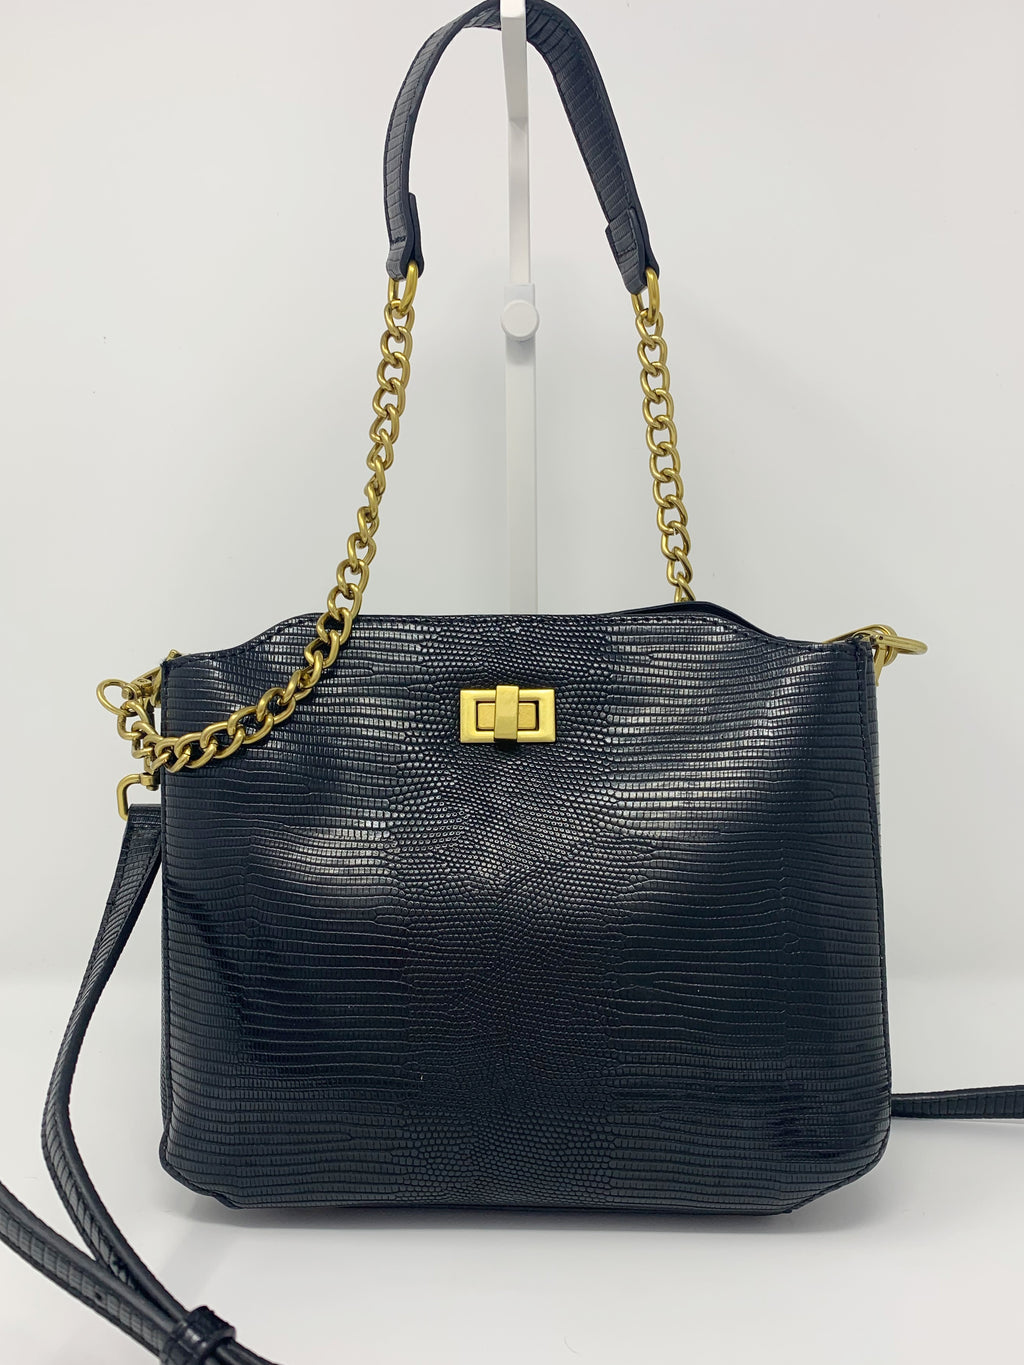 Sale! Reptile Embossed Bucket Bag with Chain and Crossbody Strap in Black